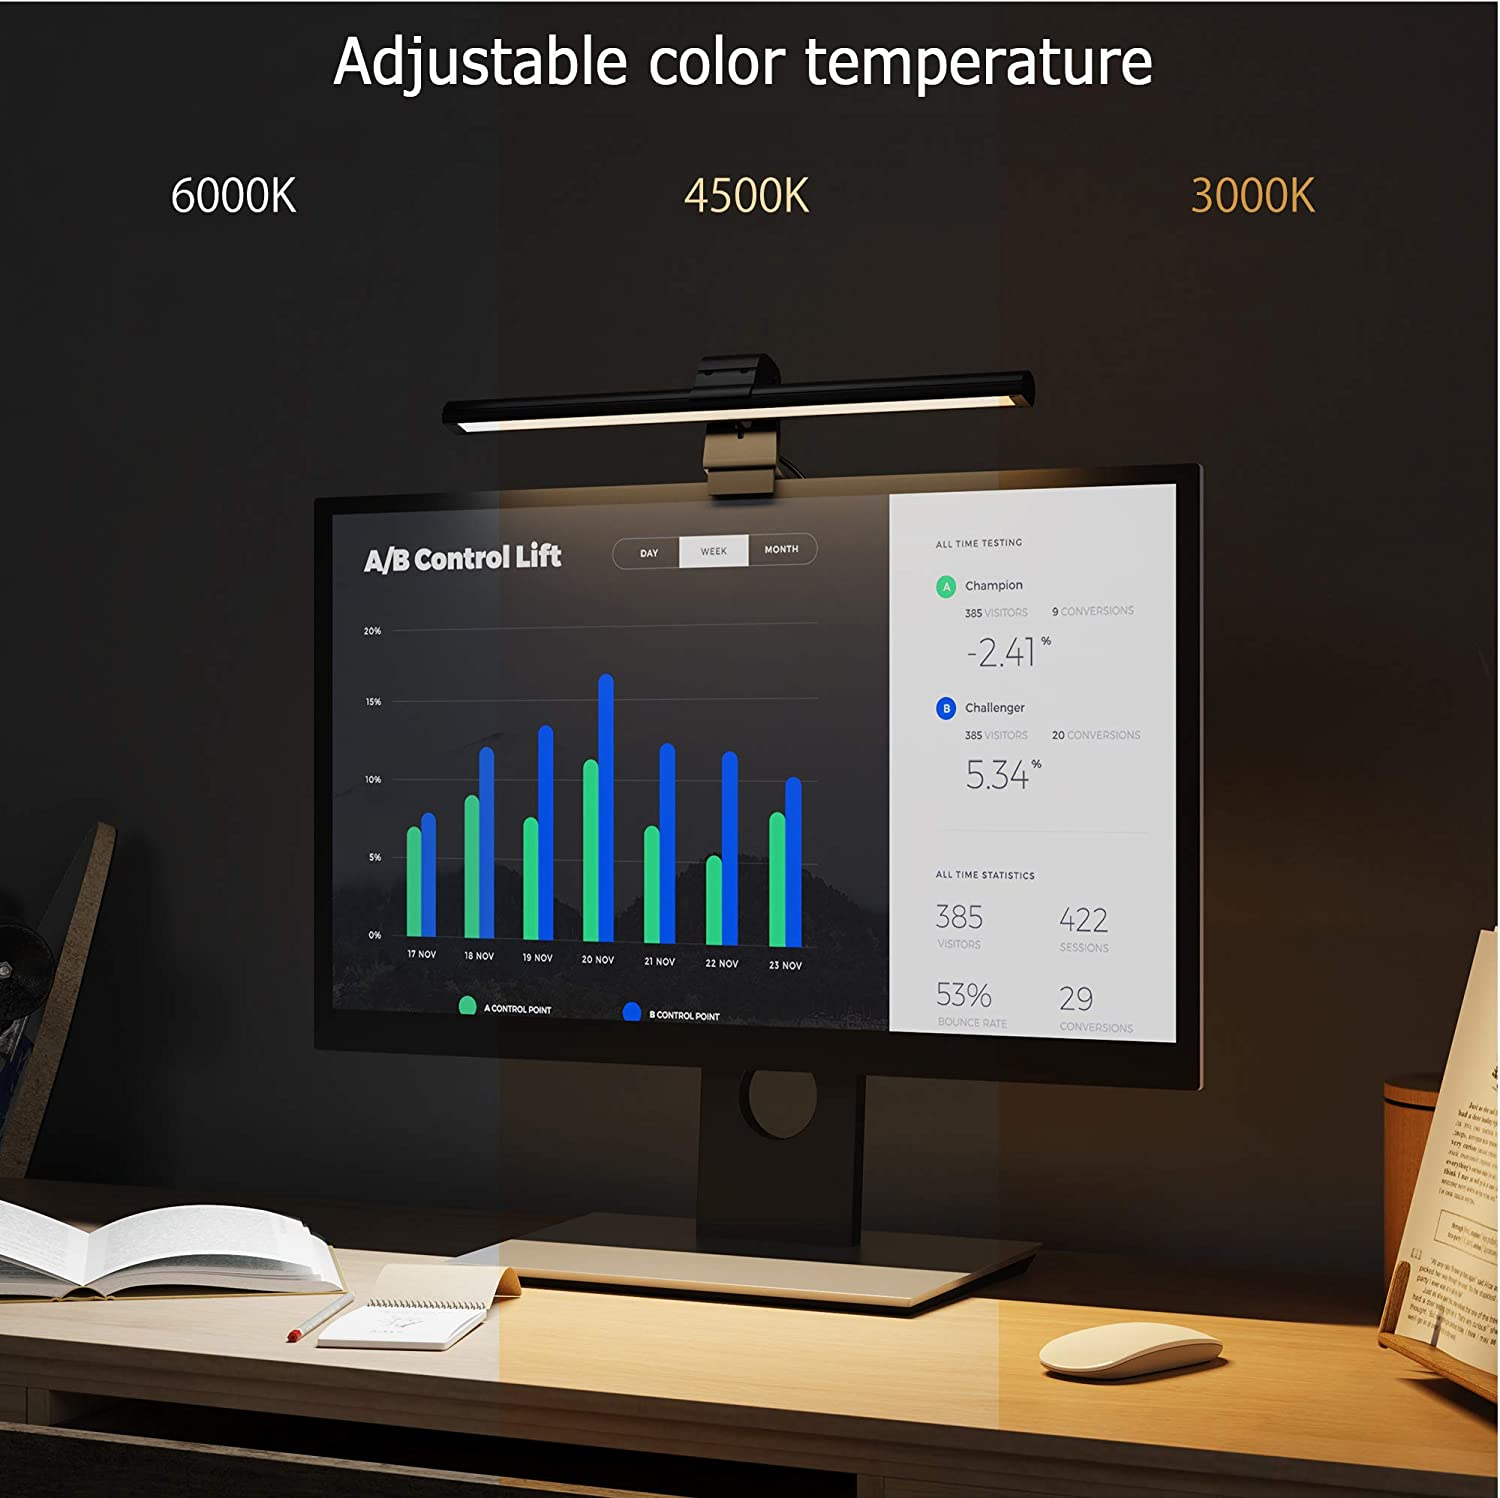 Space Saving Computer Monitor Light USB Powered Office Lamp Eye Protection 3 Color Modes LED Lights with Hue Adjustment Features No Screen Glare Screen Light Bar e-Reading LED Task Lamp Black